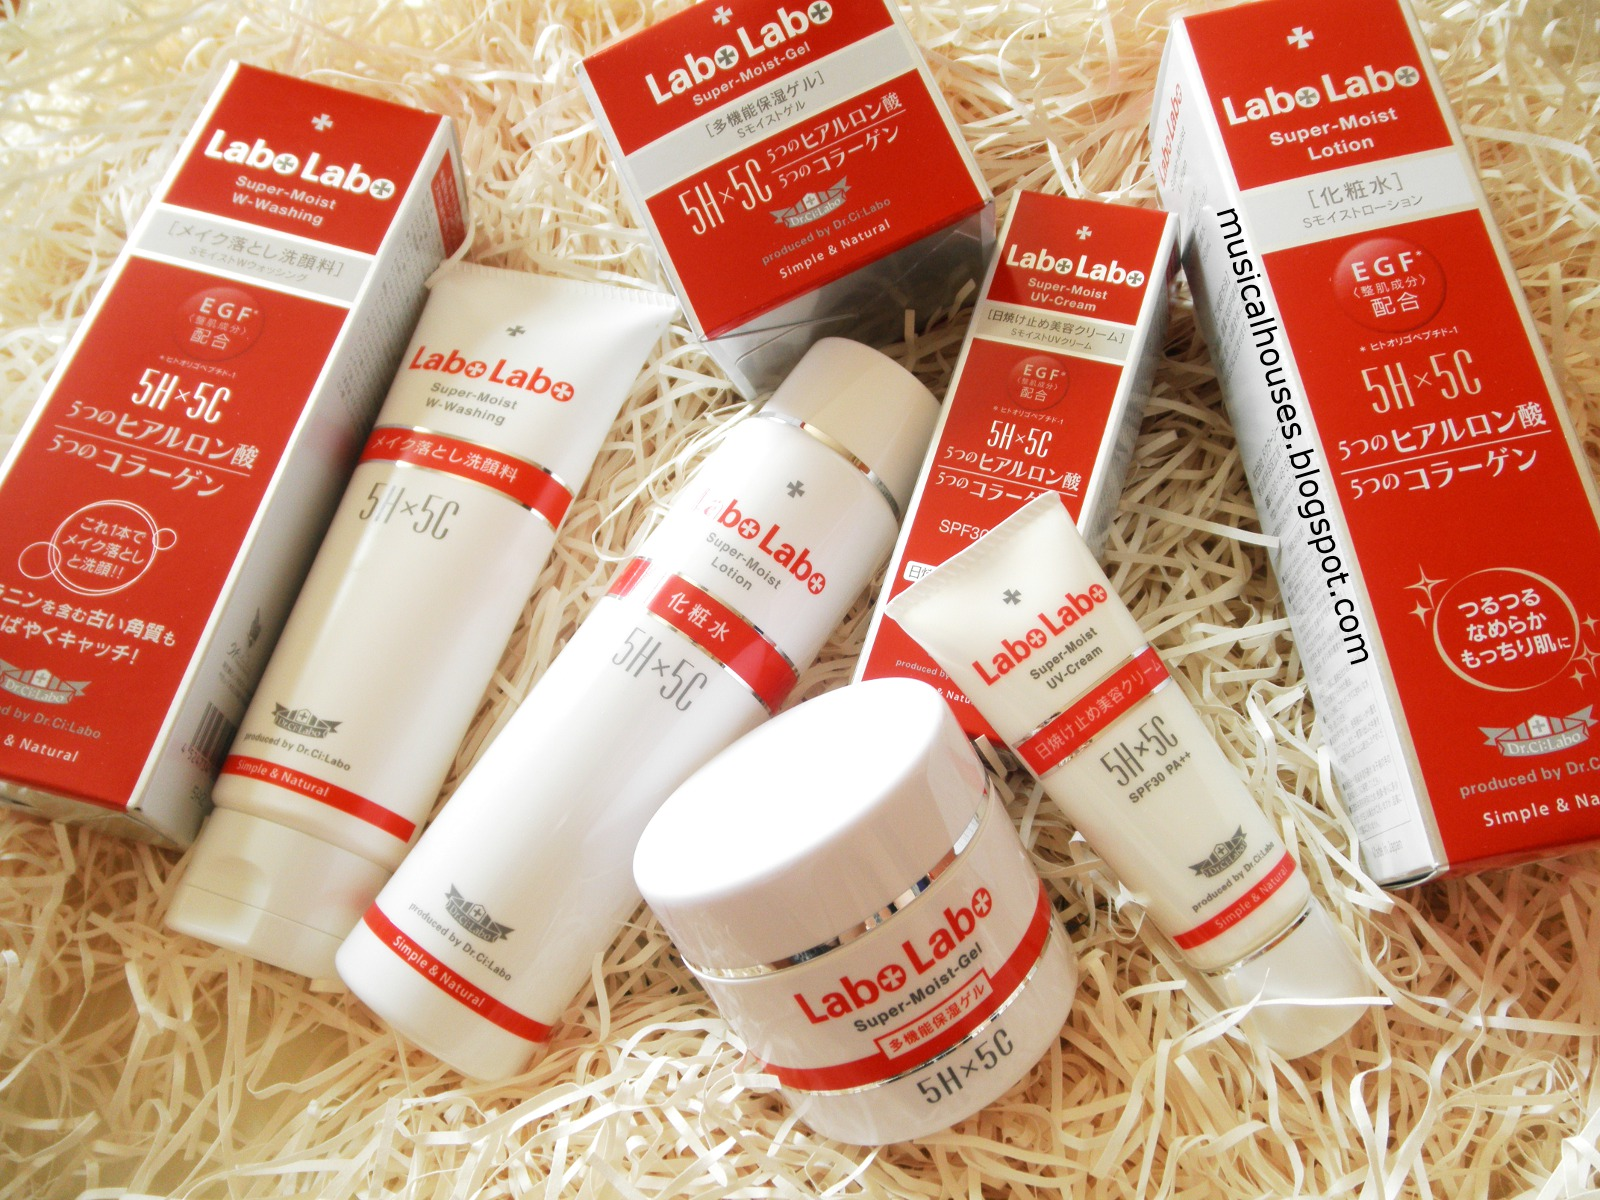 Labo Labo Super Moist 5H5C Review Dr Ci Labo Skincare